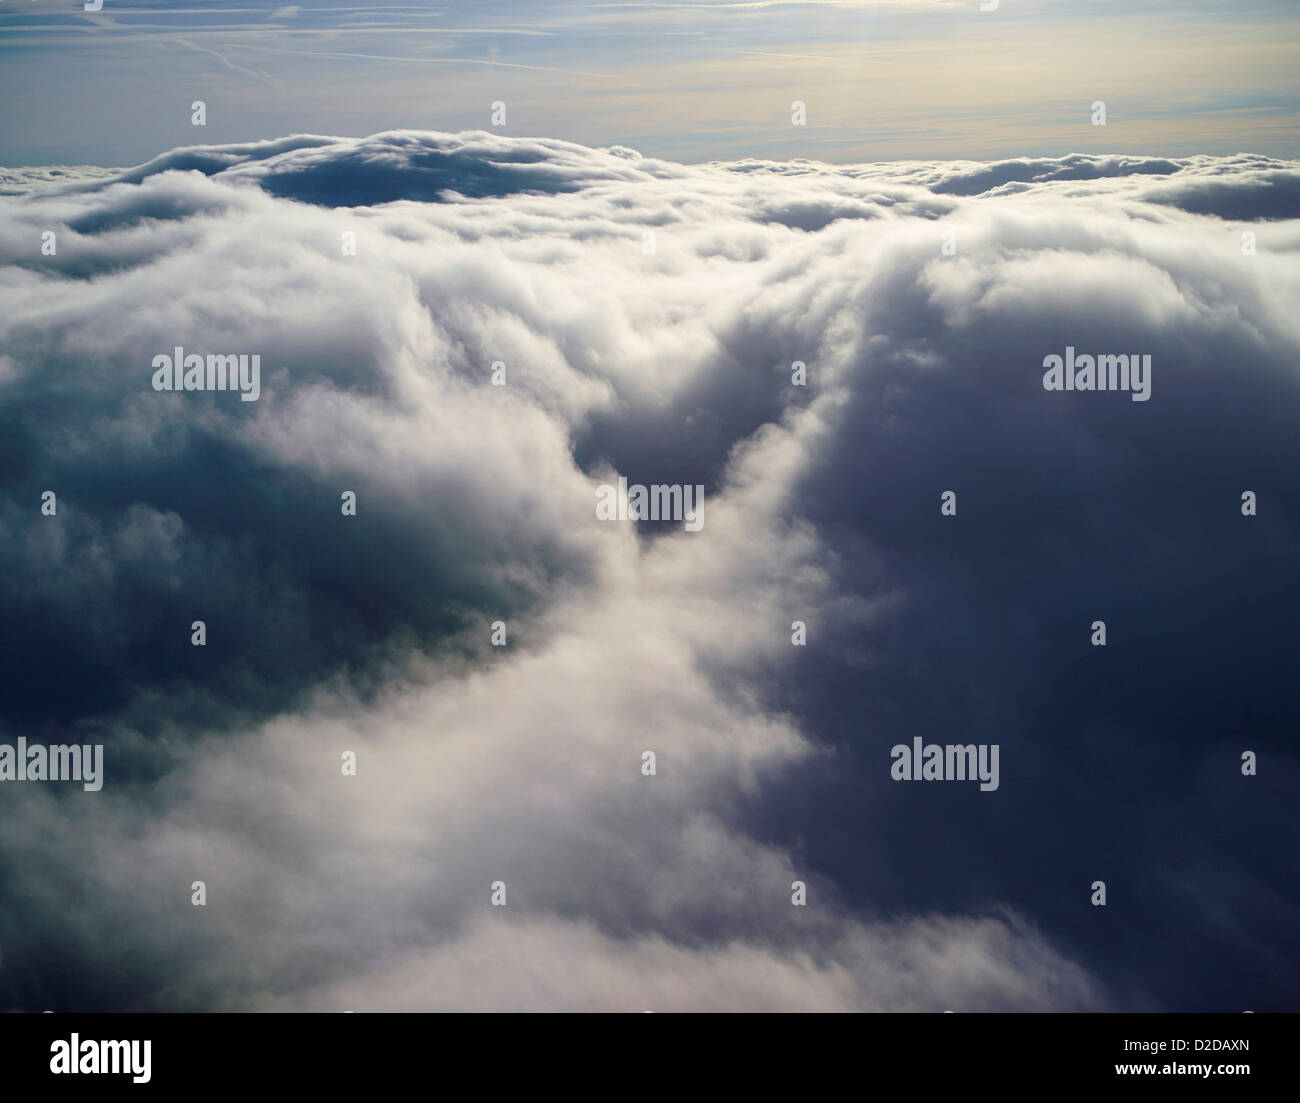 Pilots eye view above the clouds, shot over Shropshire, UK - Stock Image